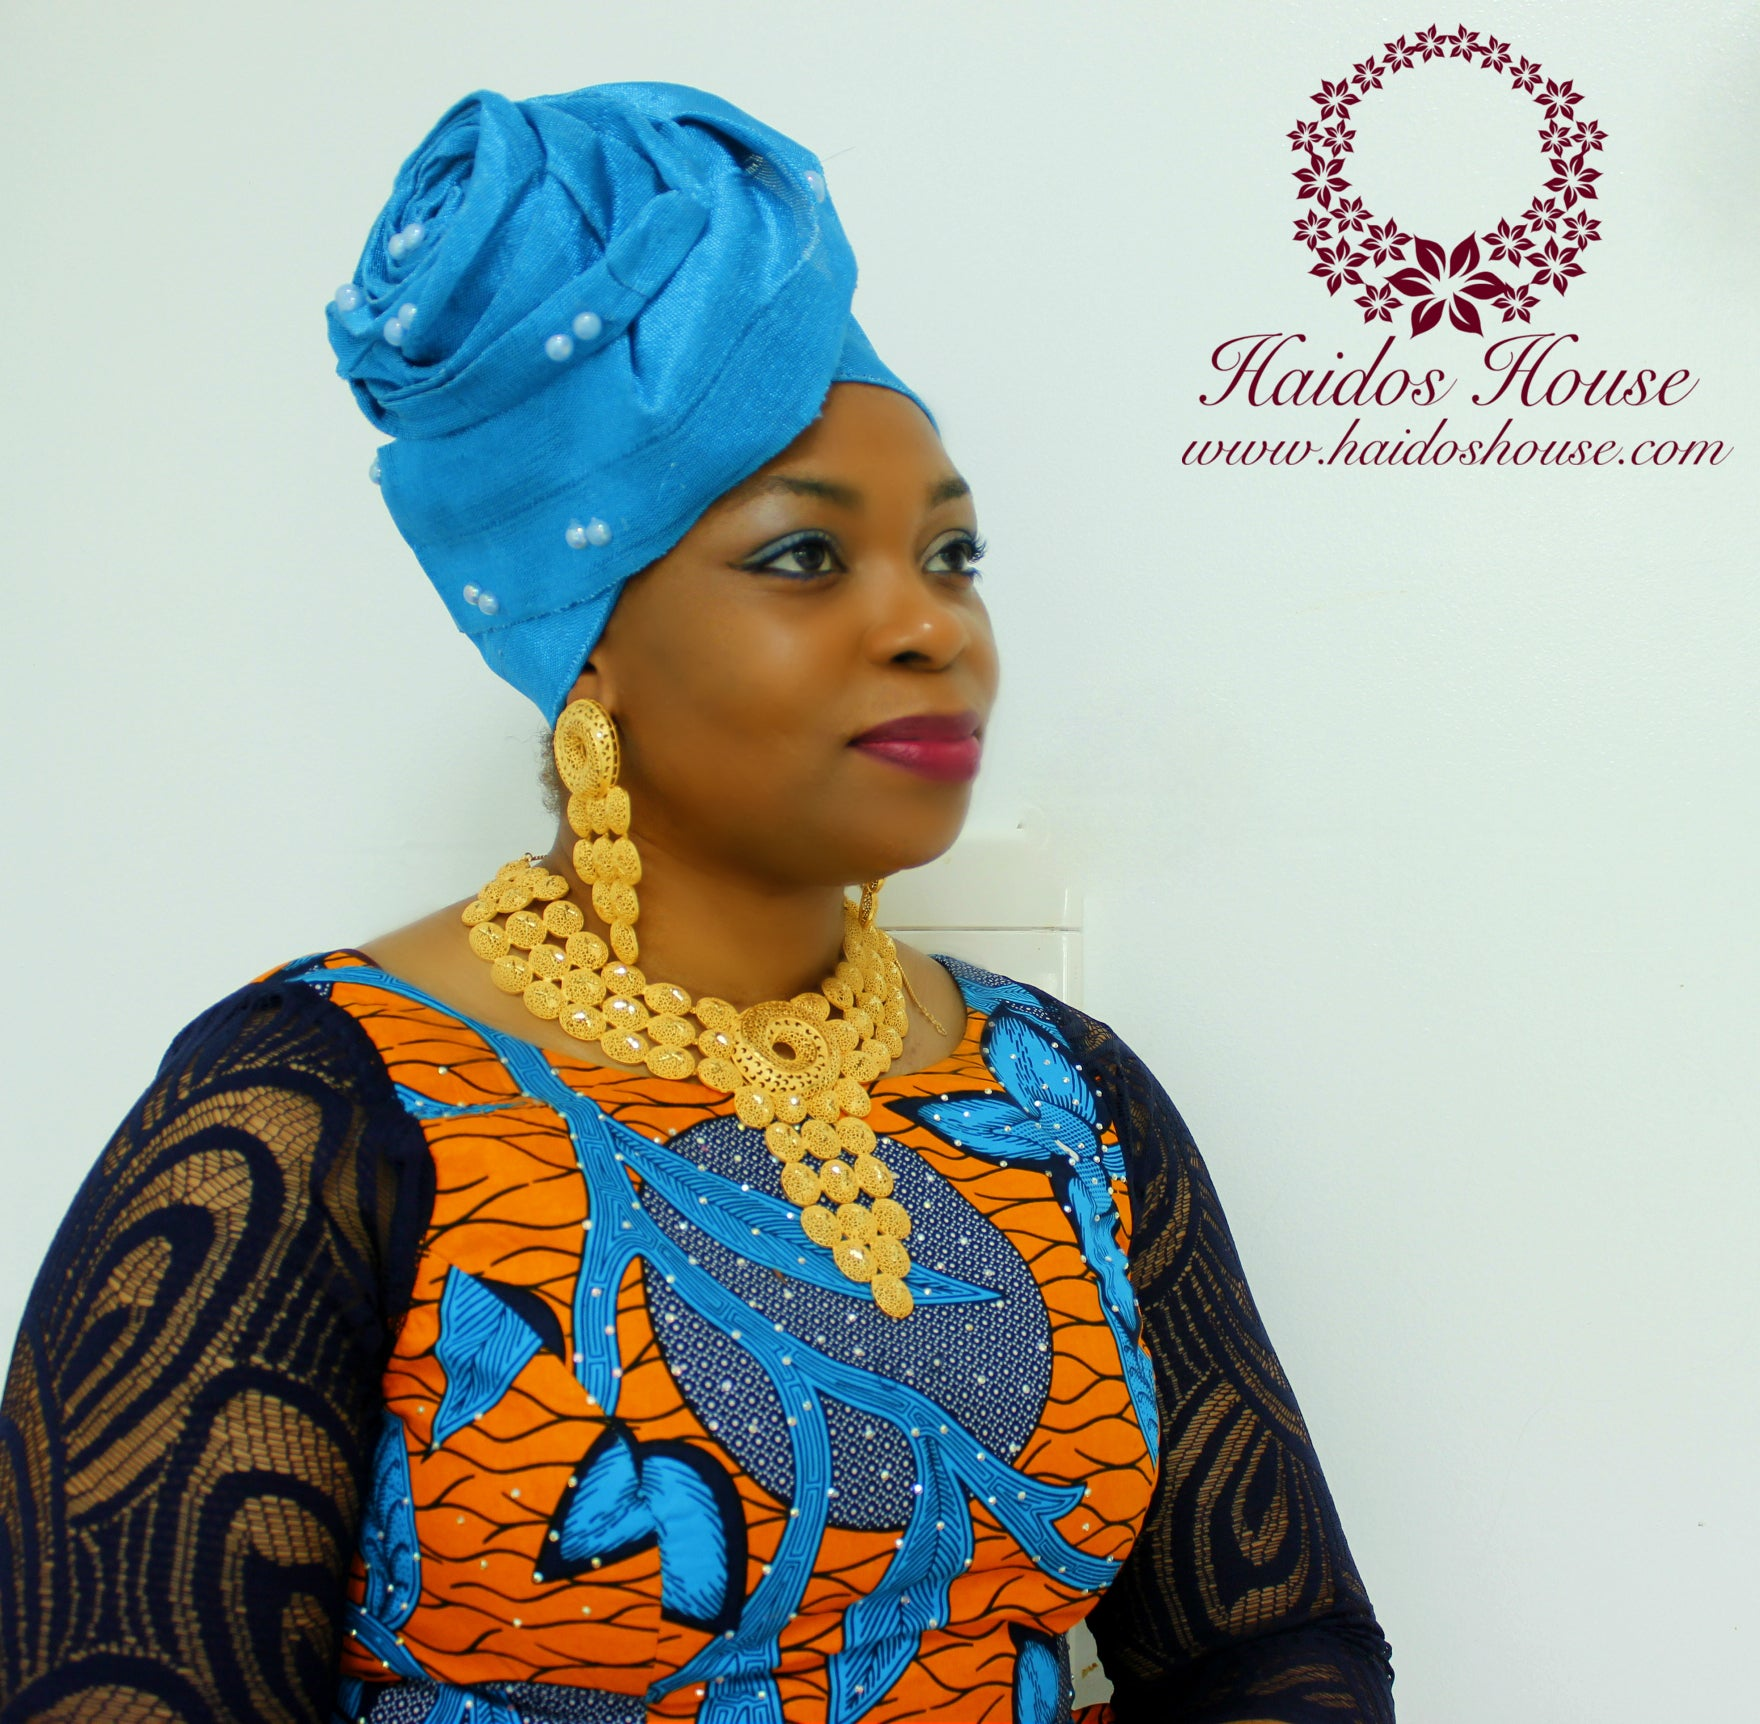 AG - Lovely Rose Design Auto-Gele/ Aso-oke Turban in Turquoise